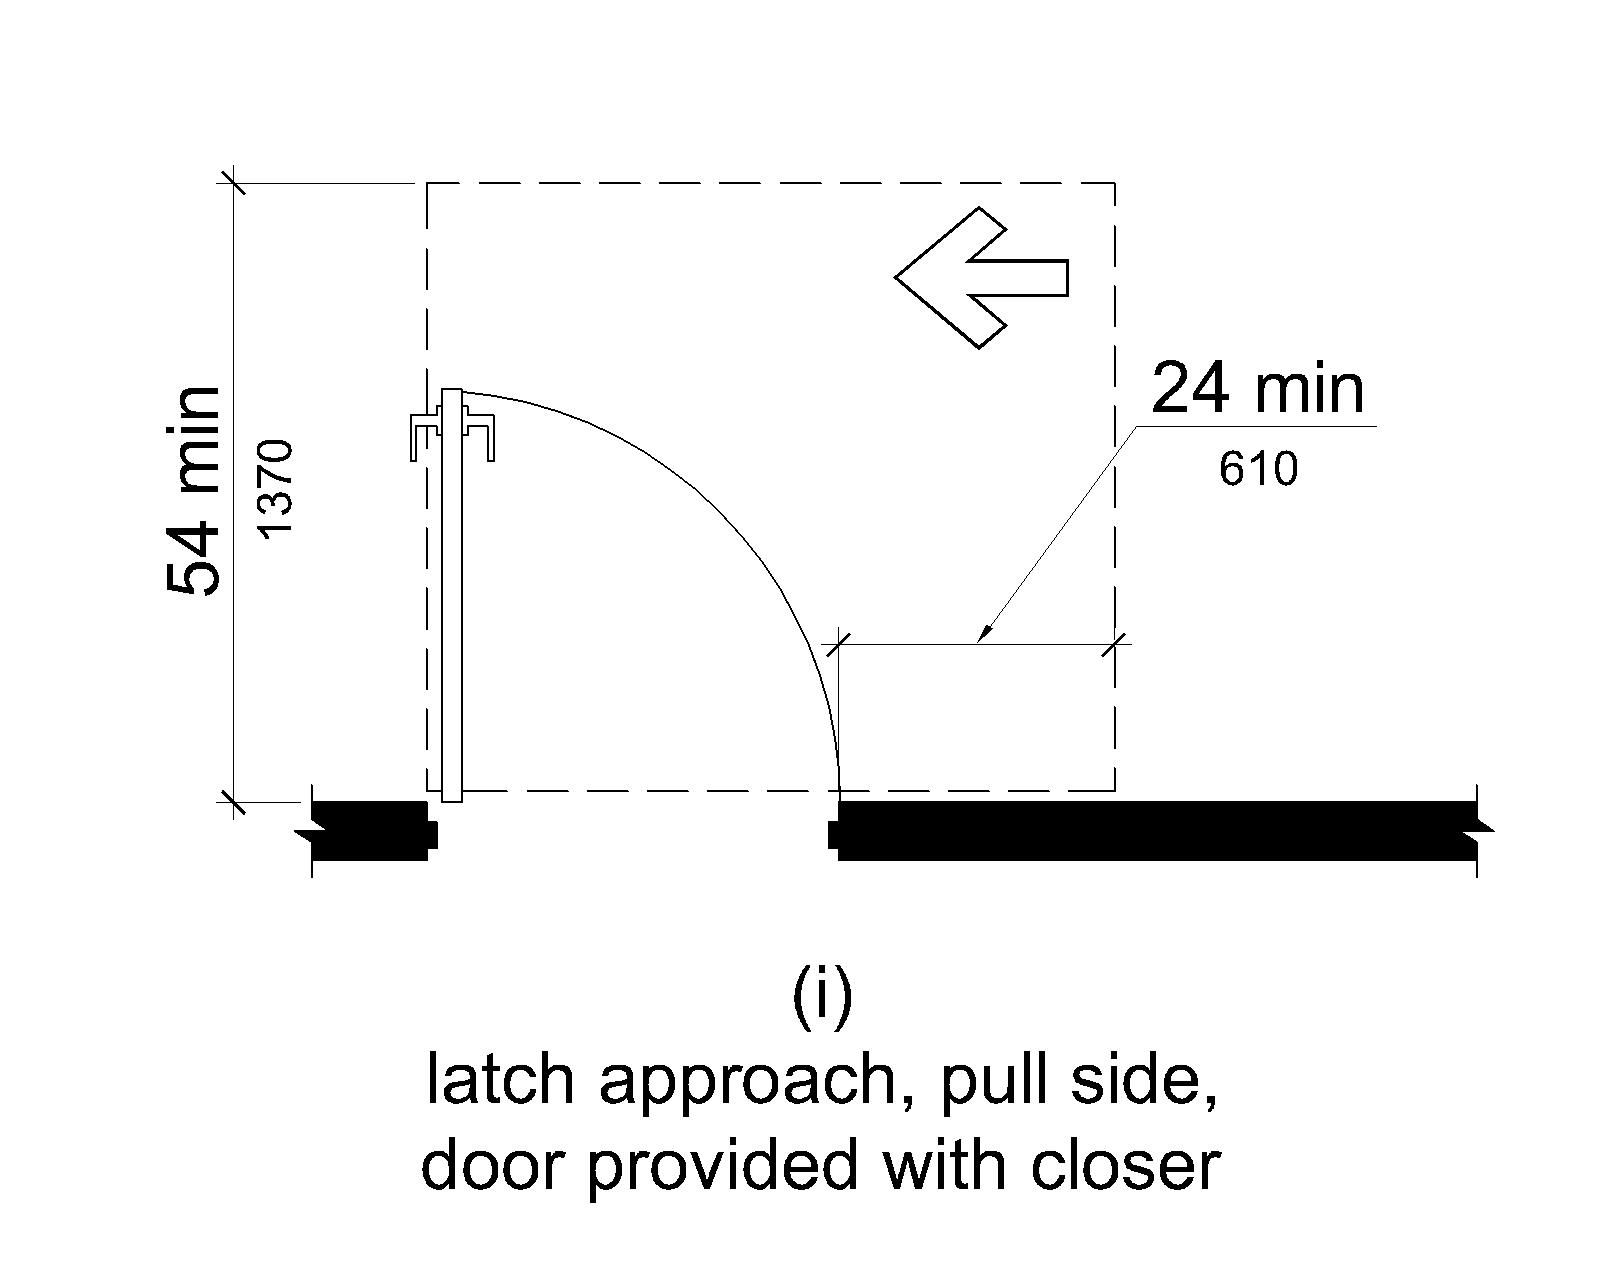 (i) Maneuvering space on the pull side extends 24 inches (915 mm) minimum beyond the latch side of the door and 54 inches (1525 mm) minimum perpendicular to the doorway if the door has both a closer and a latch.